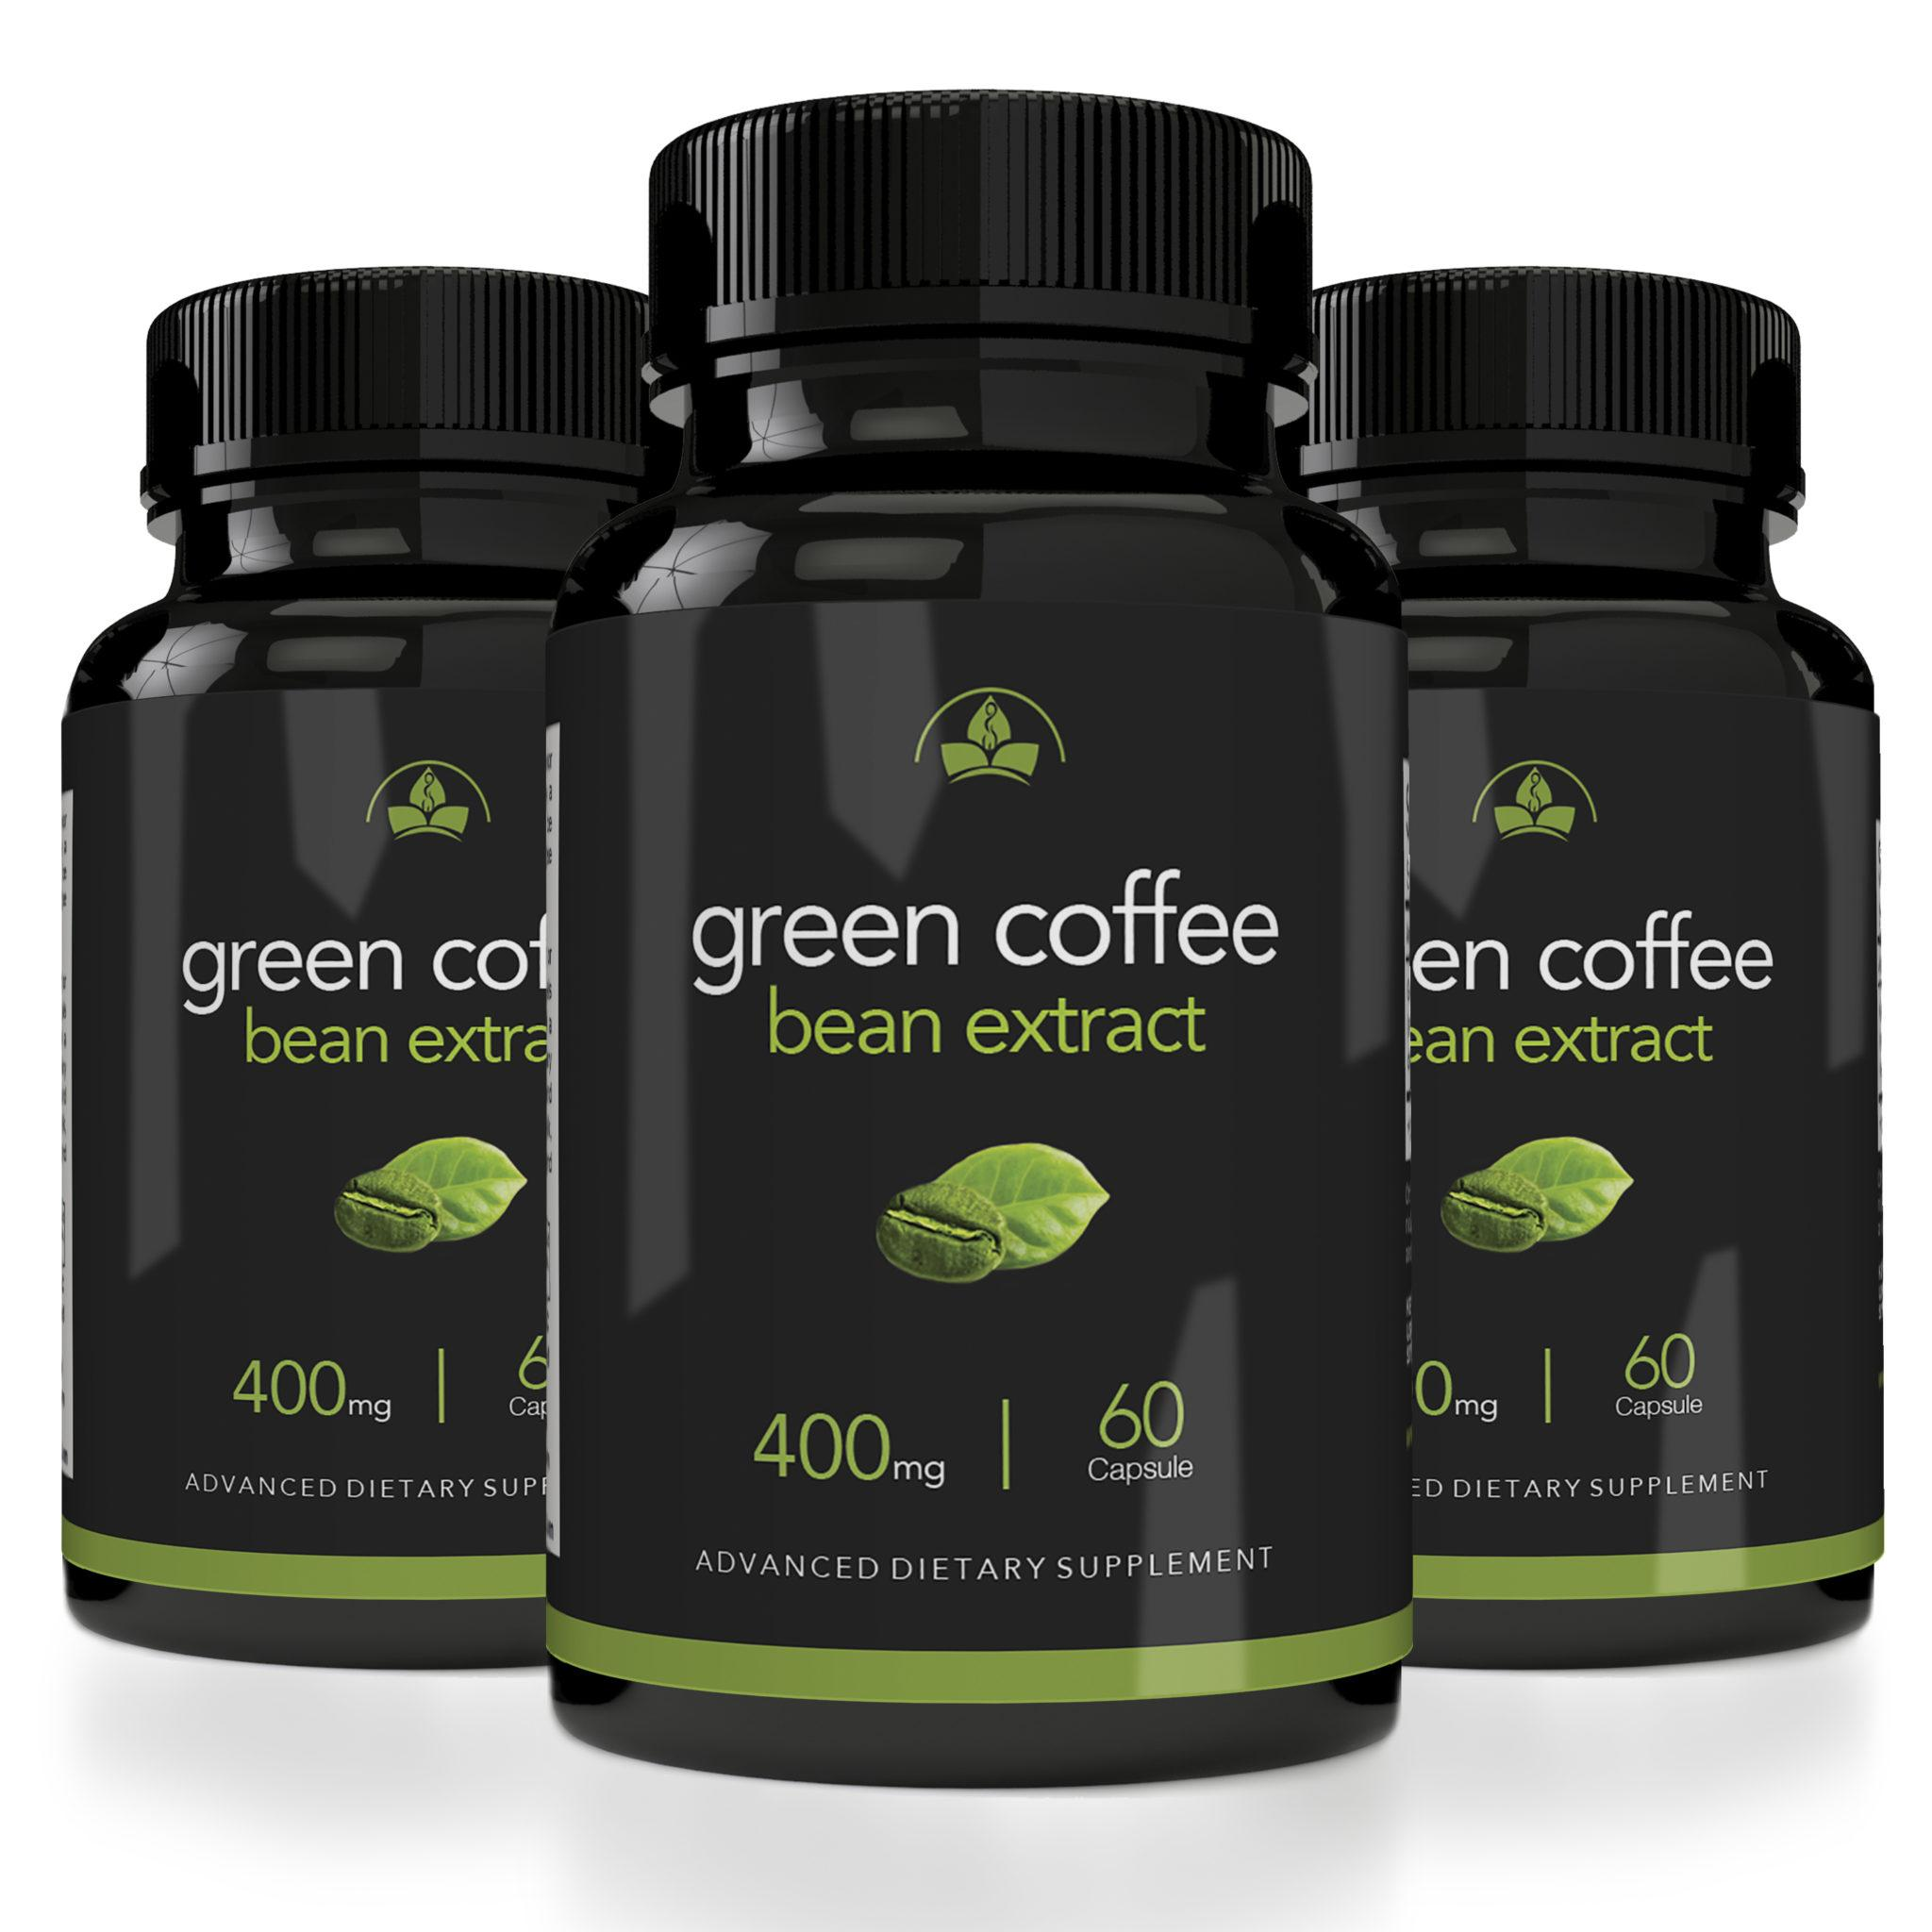 Totally Products Maximum Strength Green Coffee Bean Extract 400mg (60 Capsules) - 3 Bottles